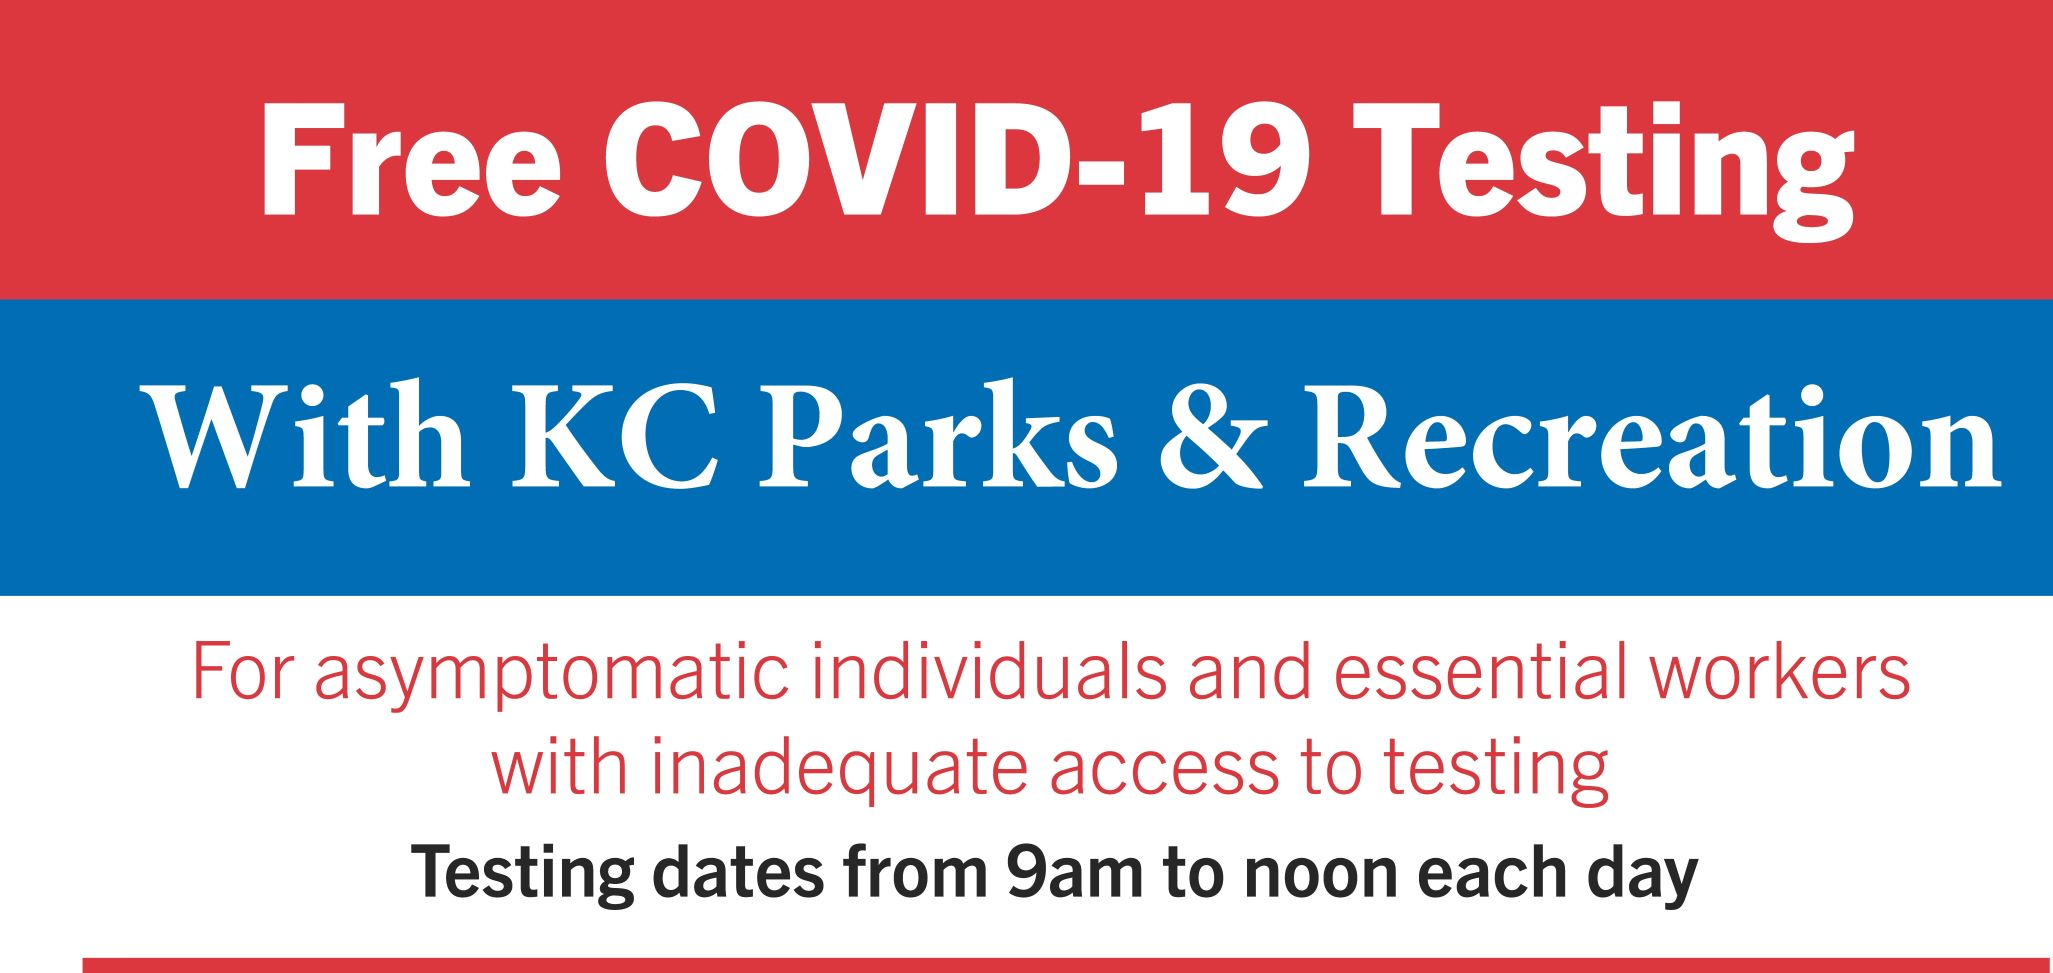 KC Parks Offers Free COVID-19 Testing